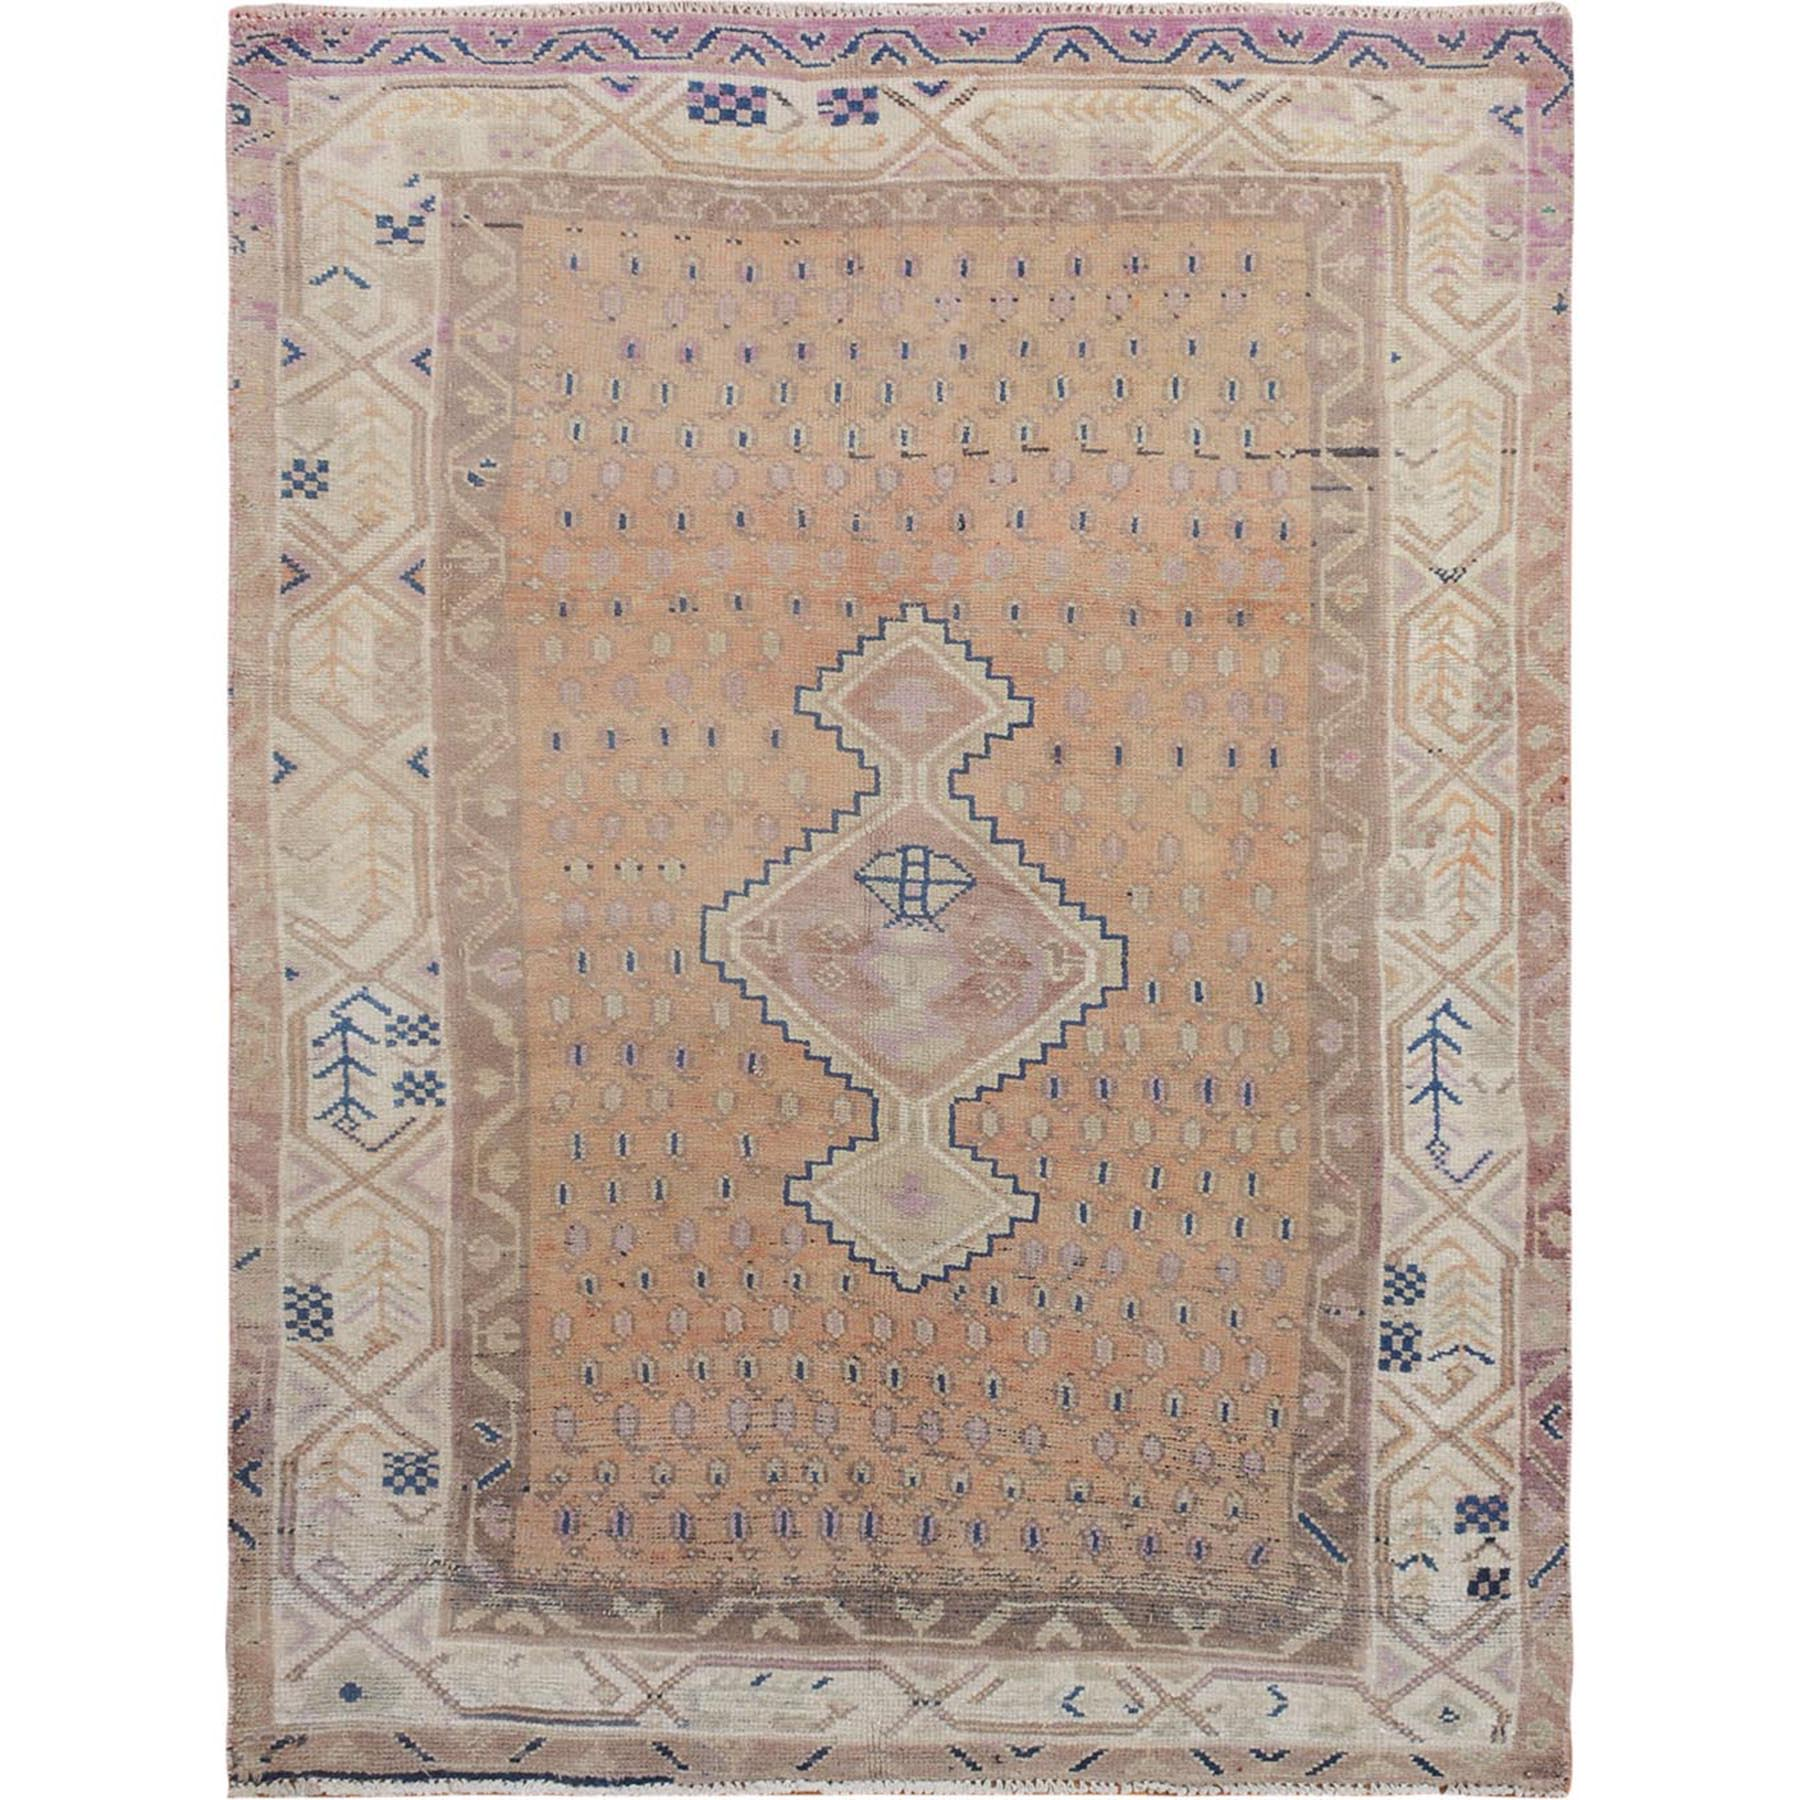 "4'8""x6'4"" Distressed Colors Vintage Persian Shiraz Clean Worn Down Pure Wool Hand Woven Oriental Rug"